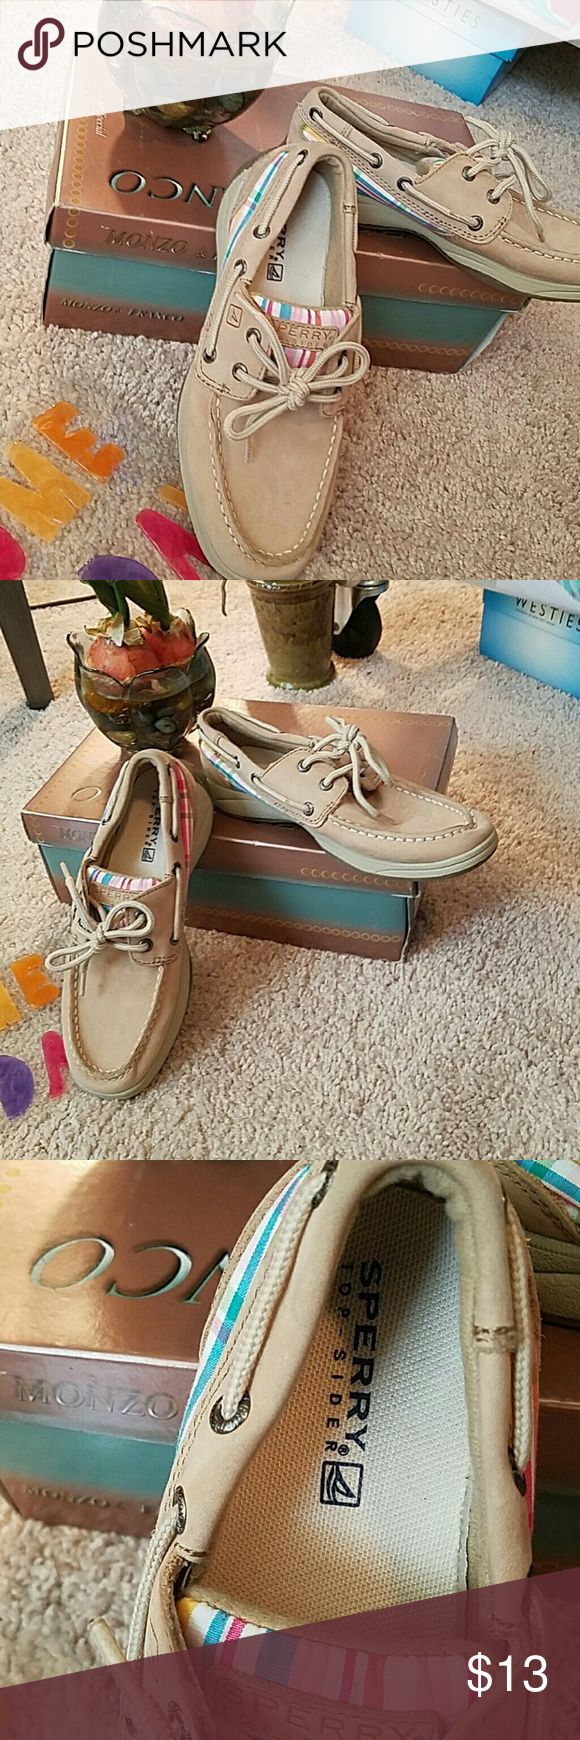 Girl's Sperry Top Slider Intrepid size 2.5 M. Girl's Sperry Top Slider Intrepid size 2.5 M.  In good condition with general wear. Sperry Top-Sider Shoes